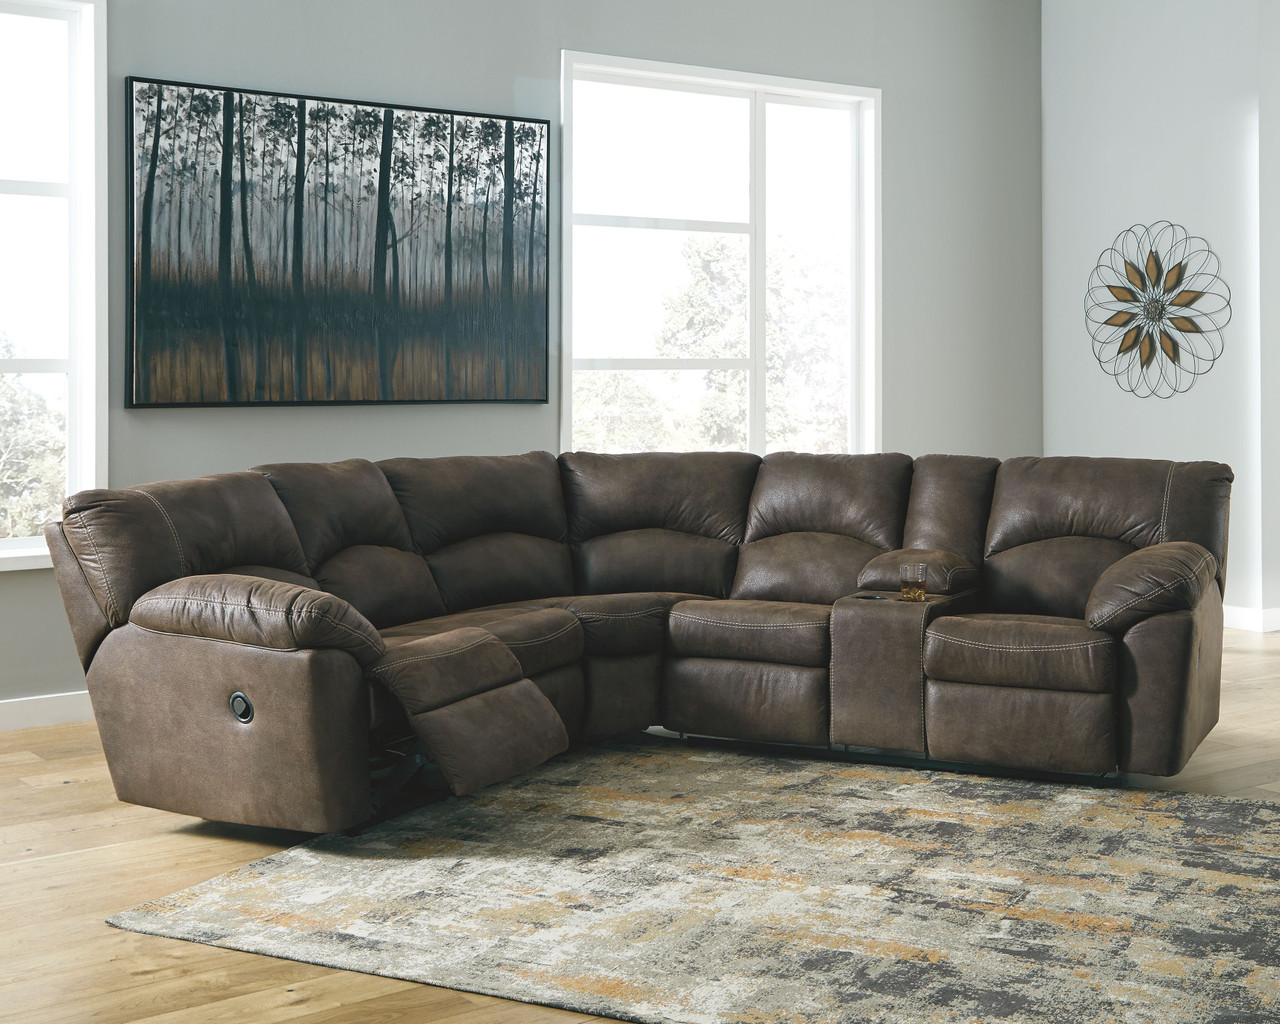 Tambo Canyon Laf Raf Reclining Loveseat Sectional On Sale At Stringer Furniture Serving Jackson Ms